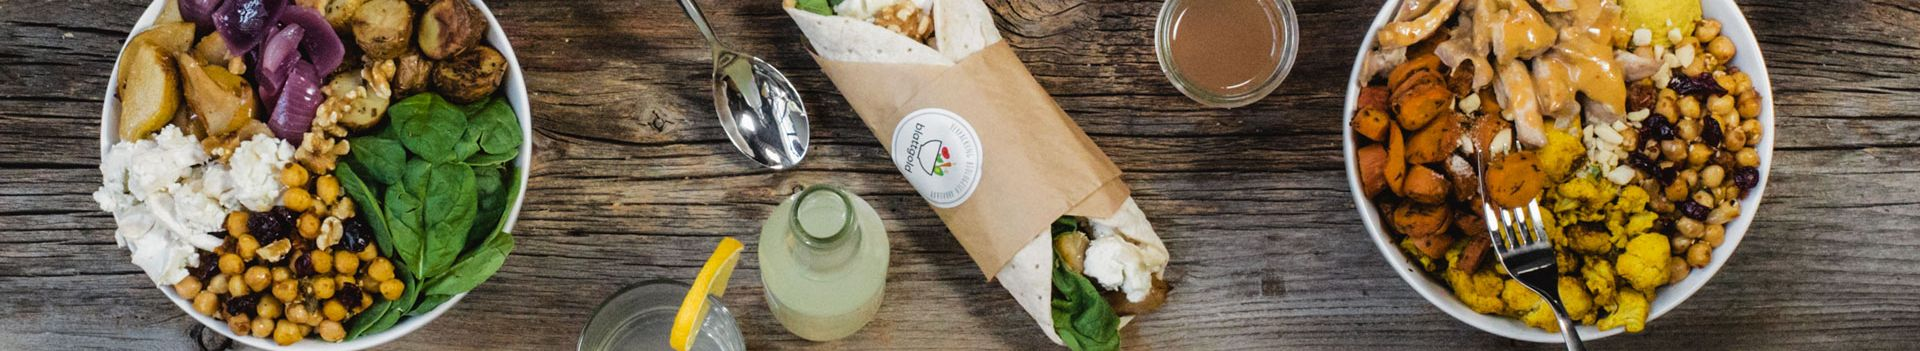 Blattgold - Salads, Bowls, Curries & Wraps Lieferservice in Wien